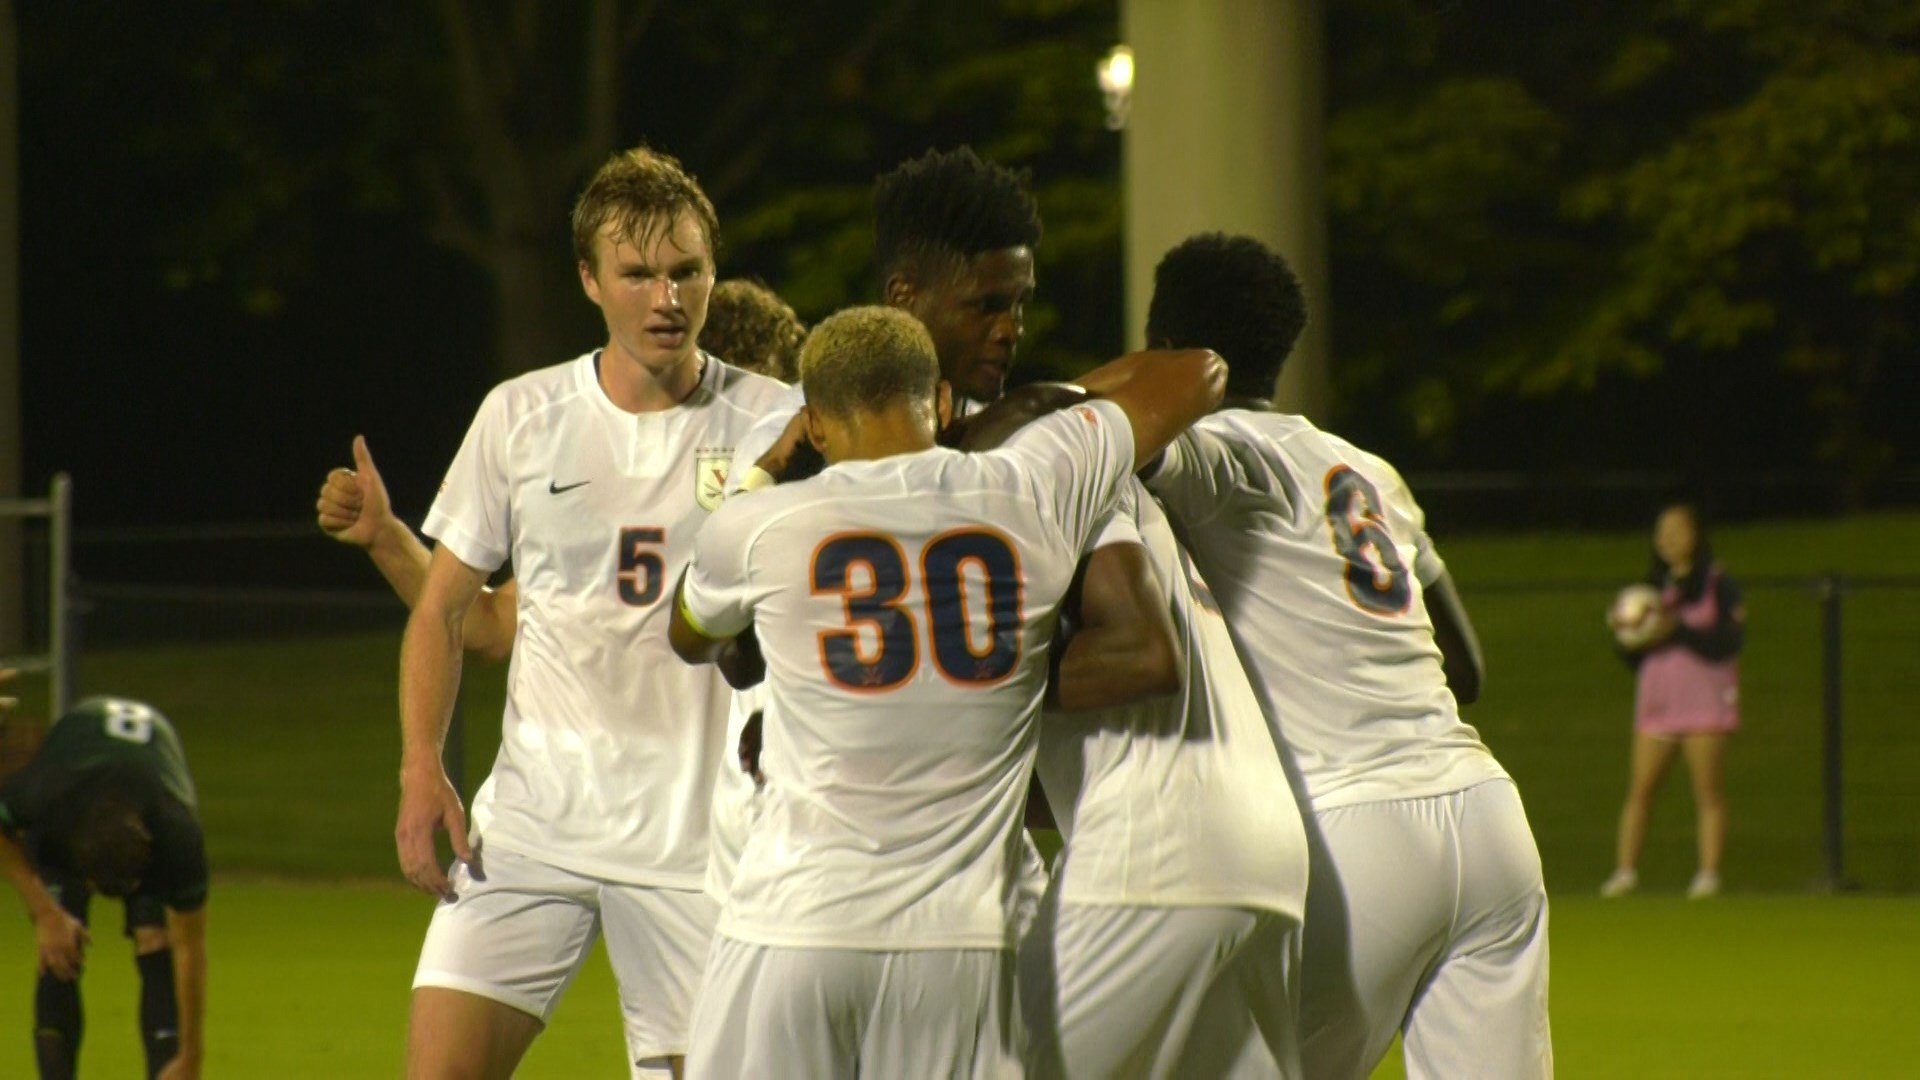 No. 19 Virginia had their third shutout of the season after a 1-0 victory over Marshall at Klöckner Stadium.